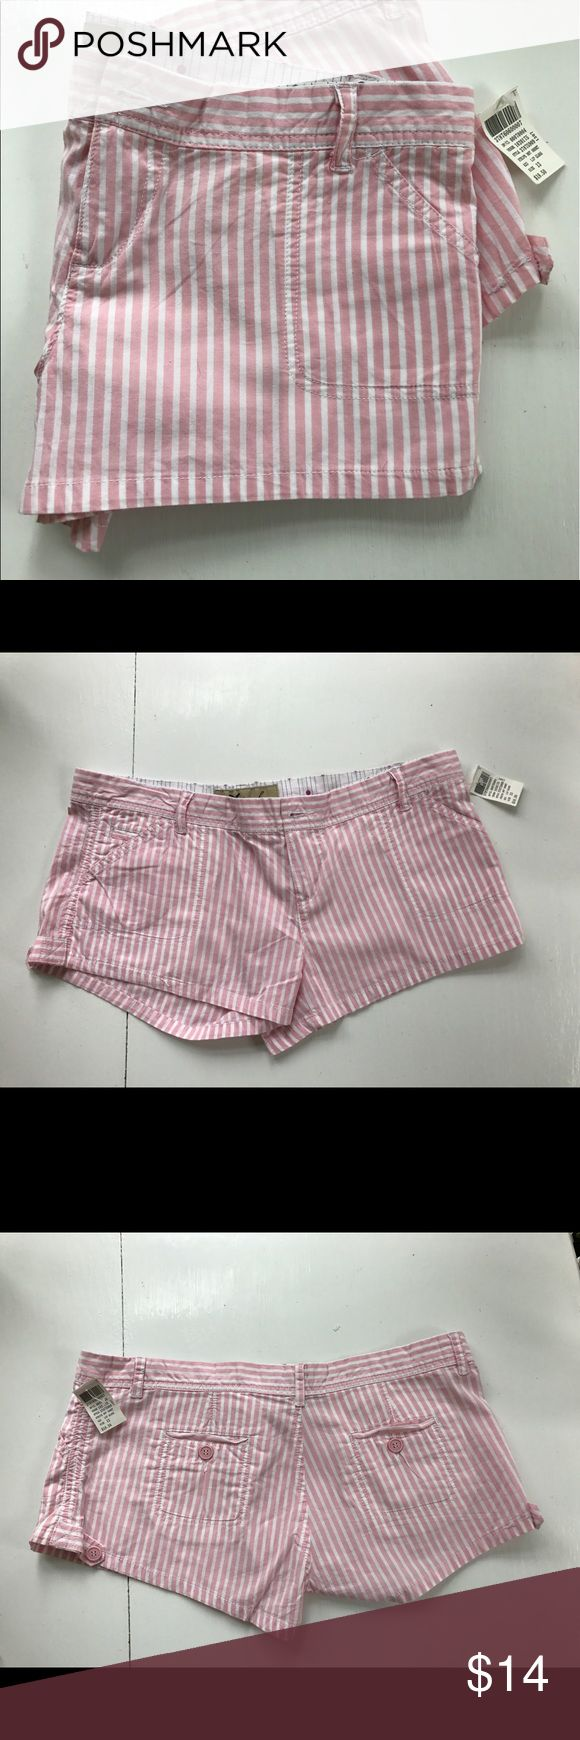 Wet seal shorts Shorts by wet seal . Light pink and white seersucker. Wet Seal Shorts